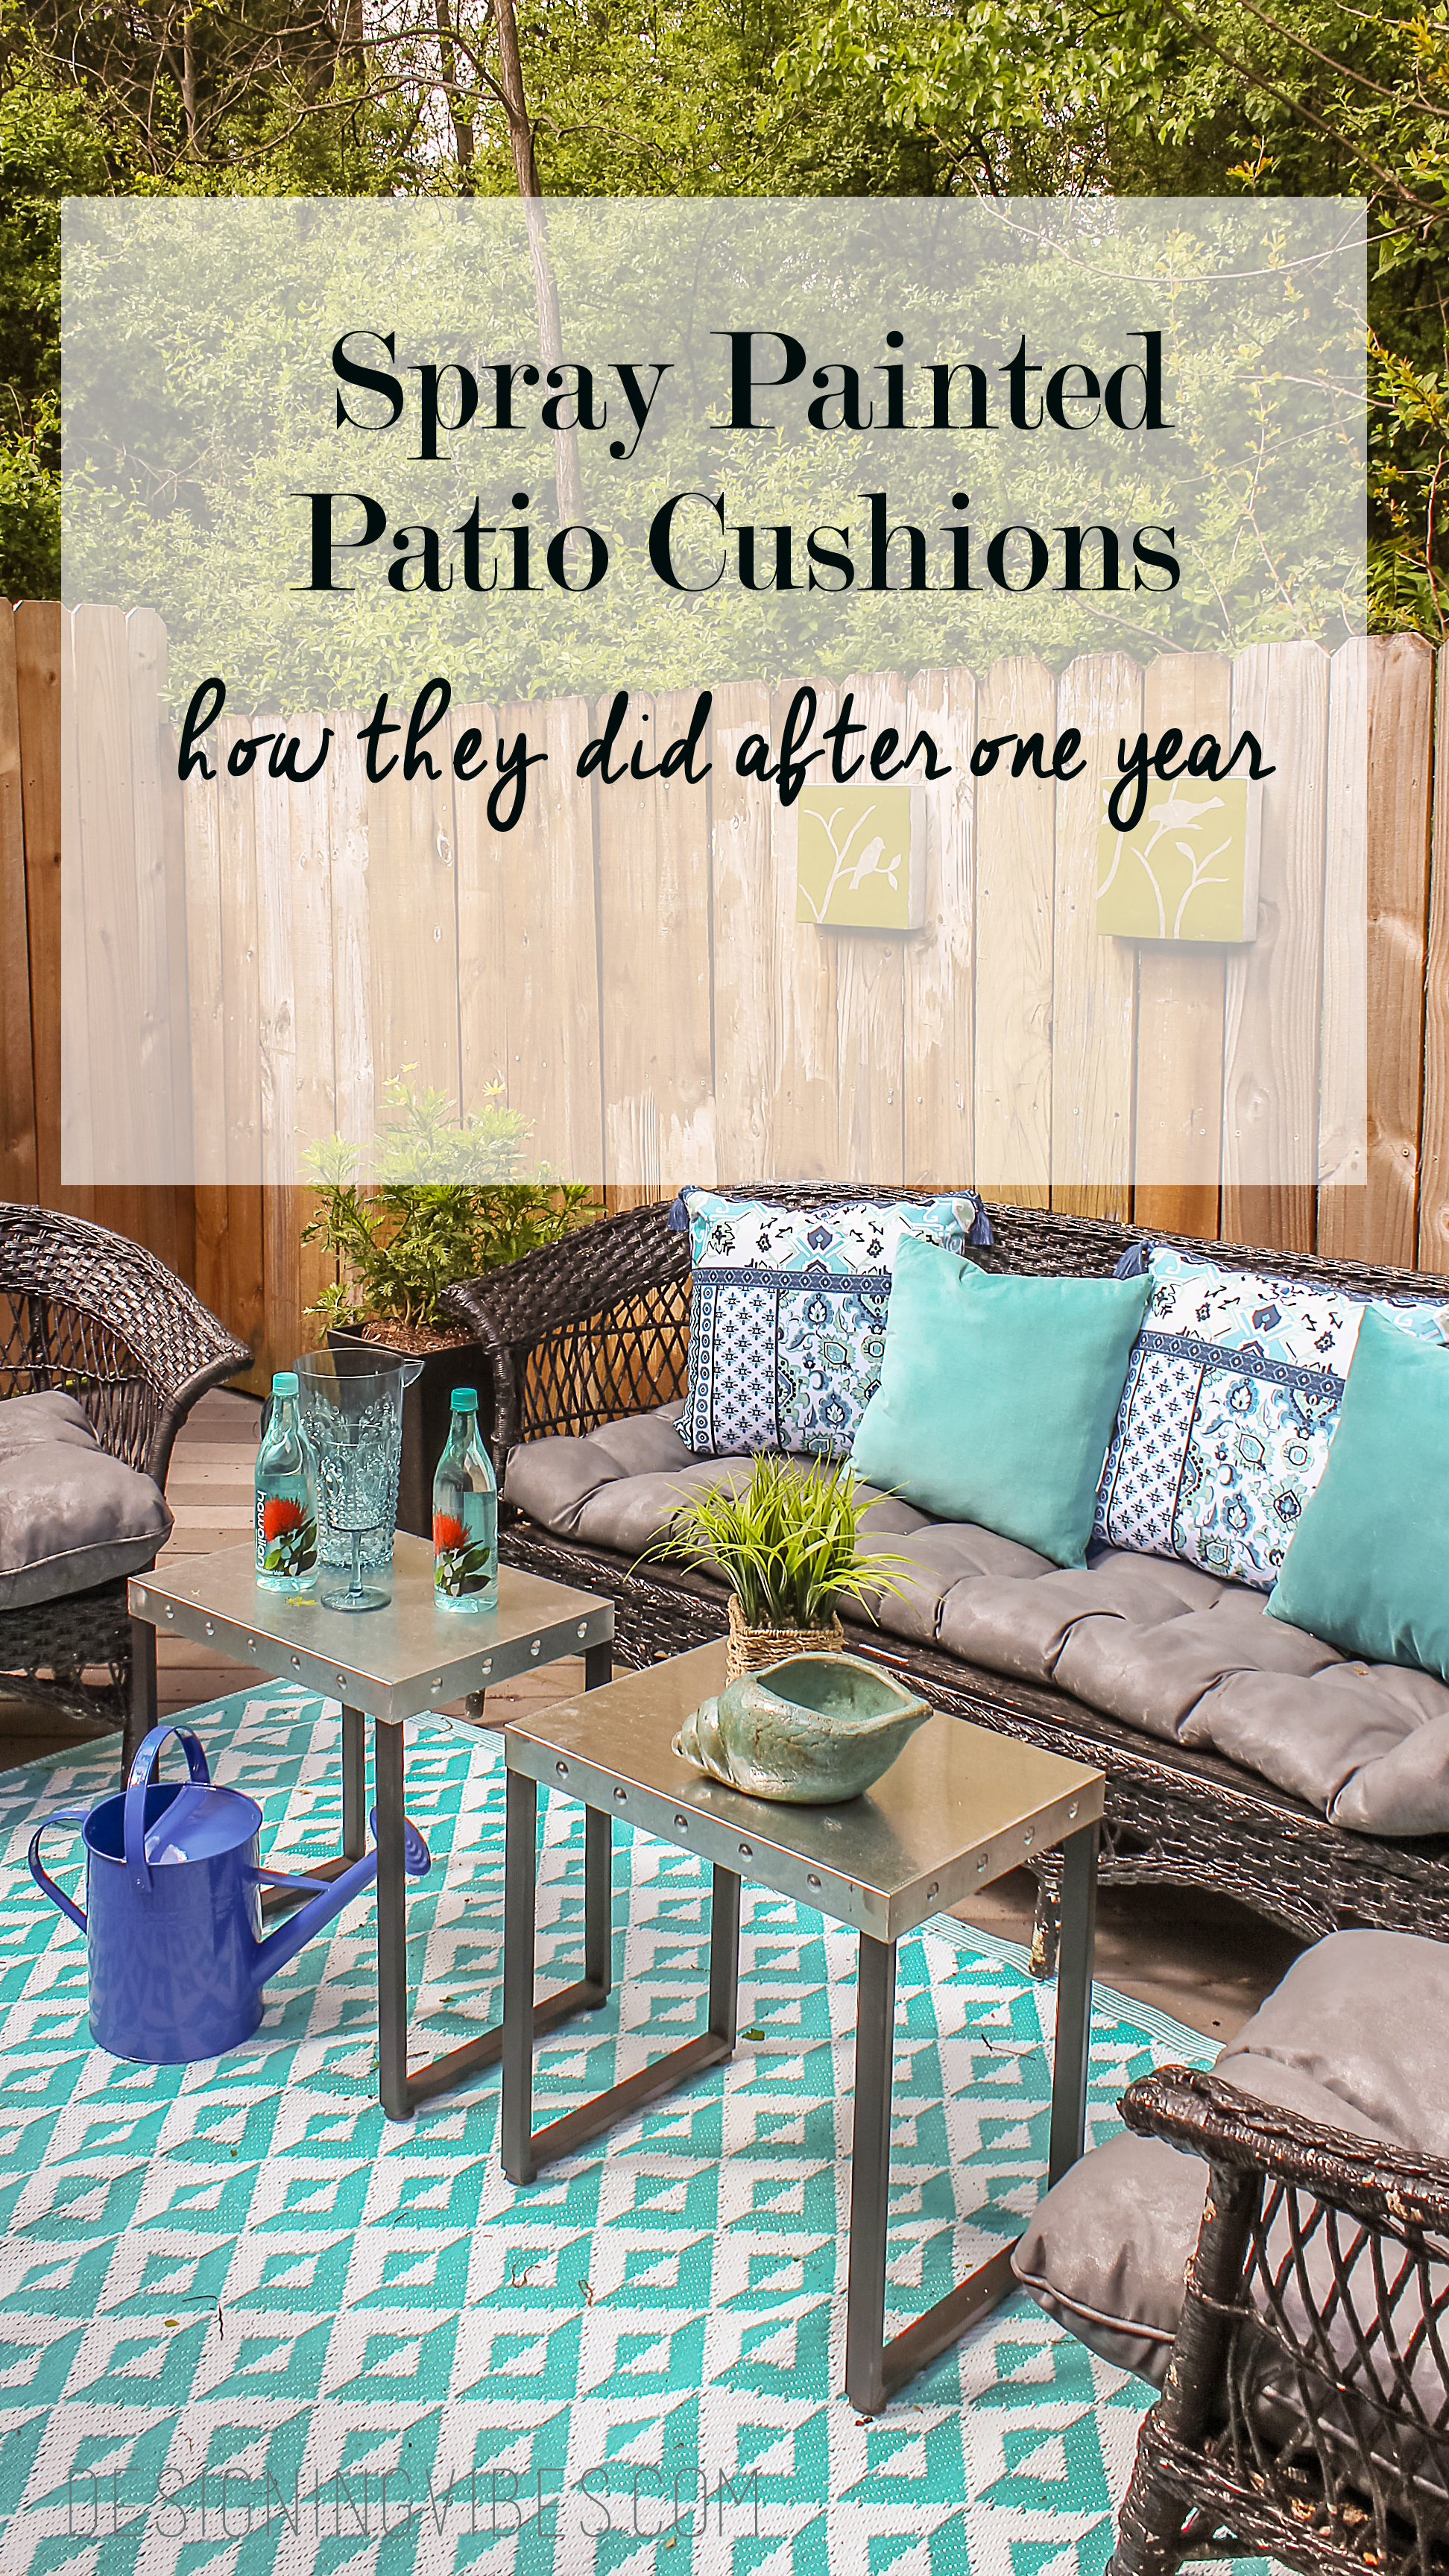 painting patio furnitureSpray Paint Fixes Everything  DIY Patio Furniture Makeover